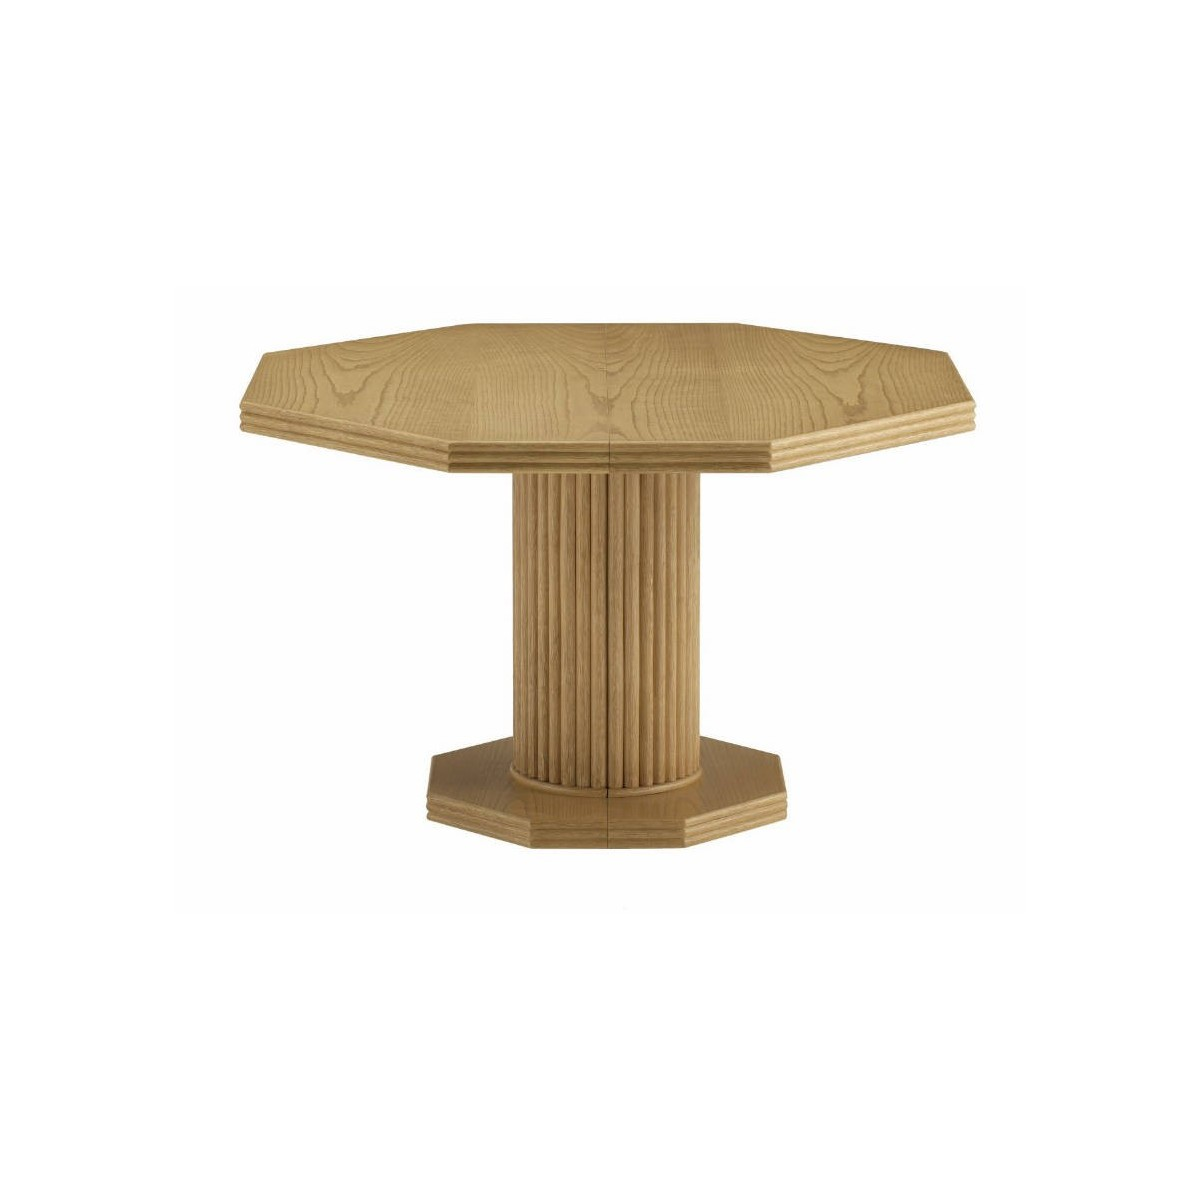 Table de salon en rotin octogonale pied central - Table de jardin octogonale ...